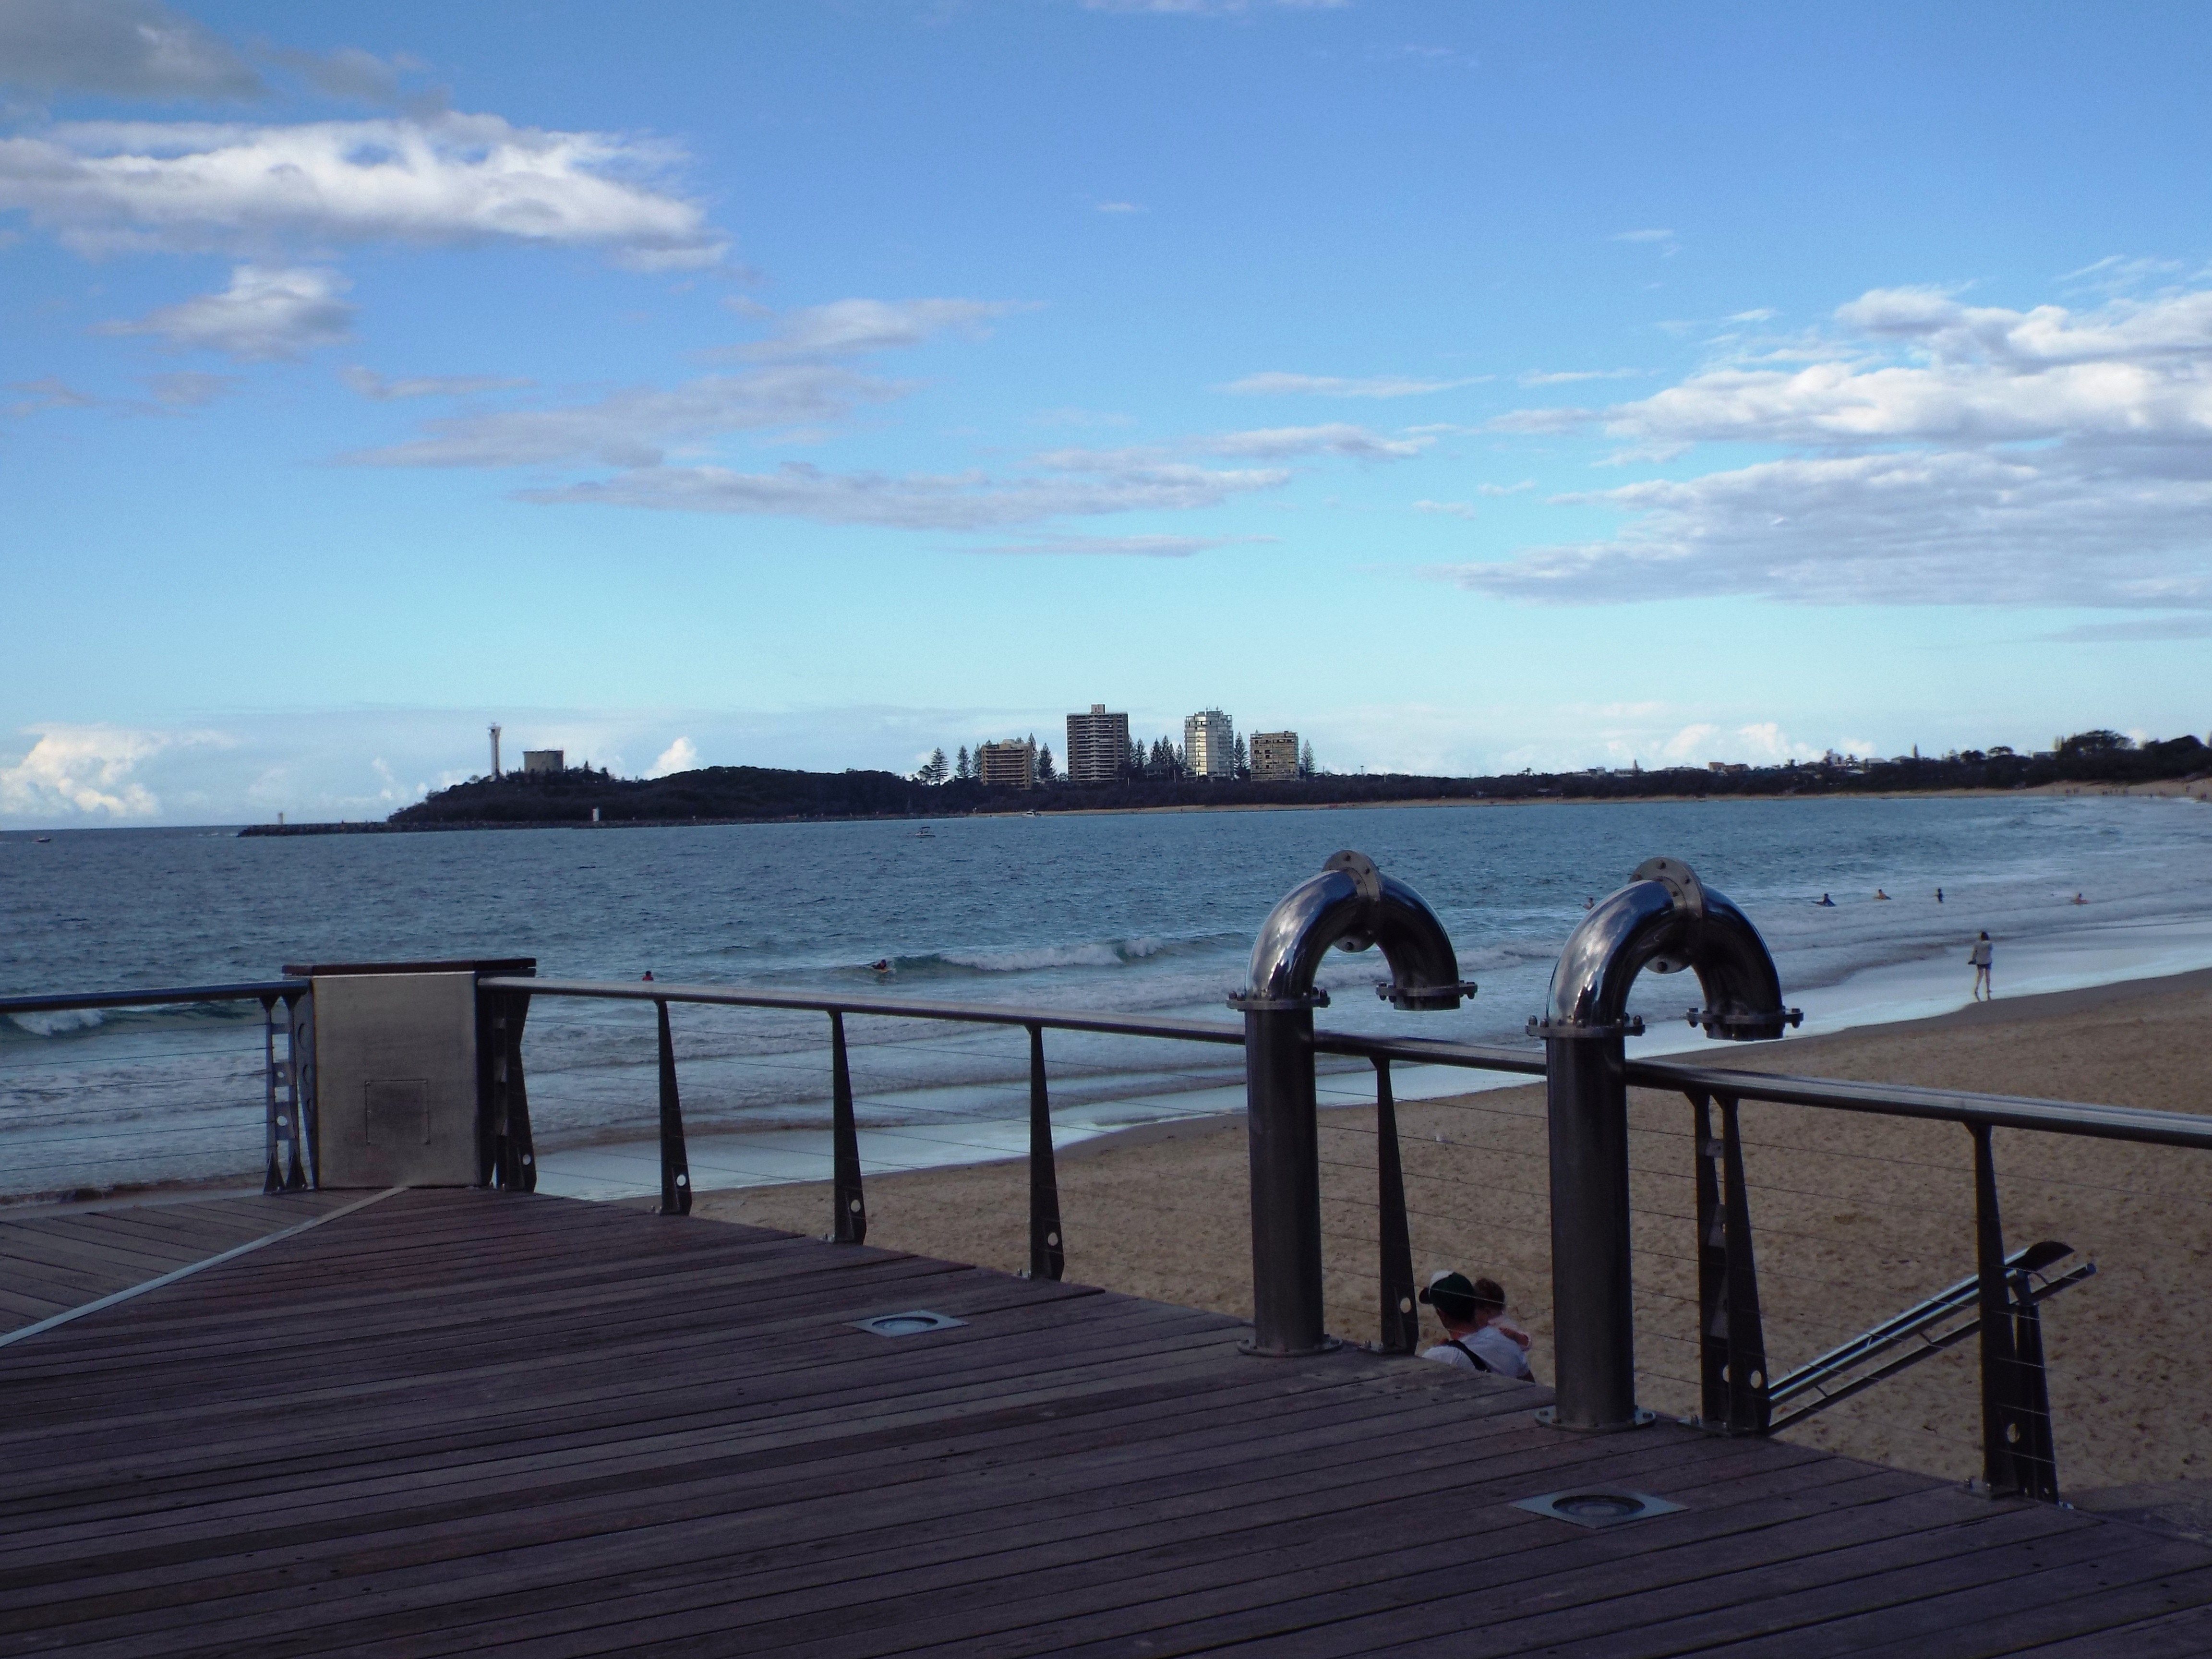 Mooloolaba Beach from Loo with a View